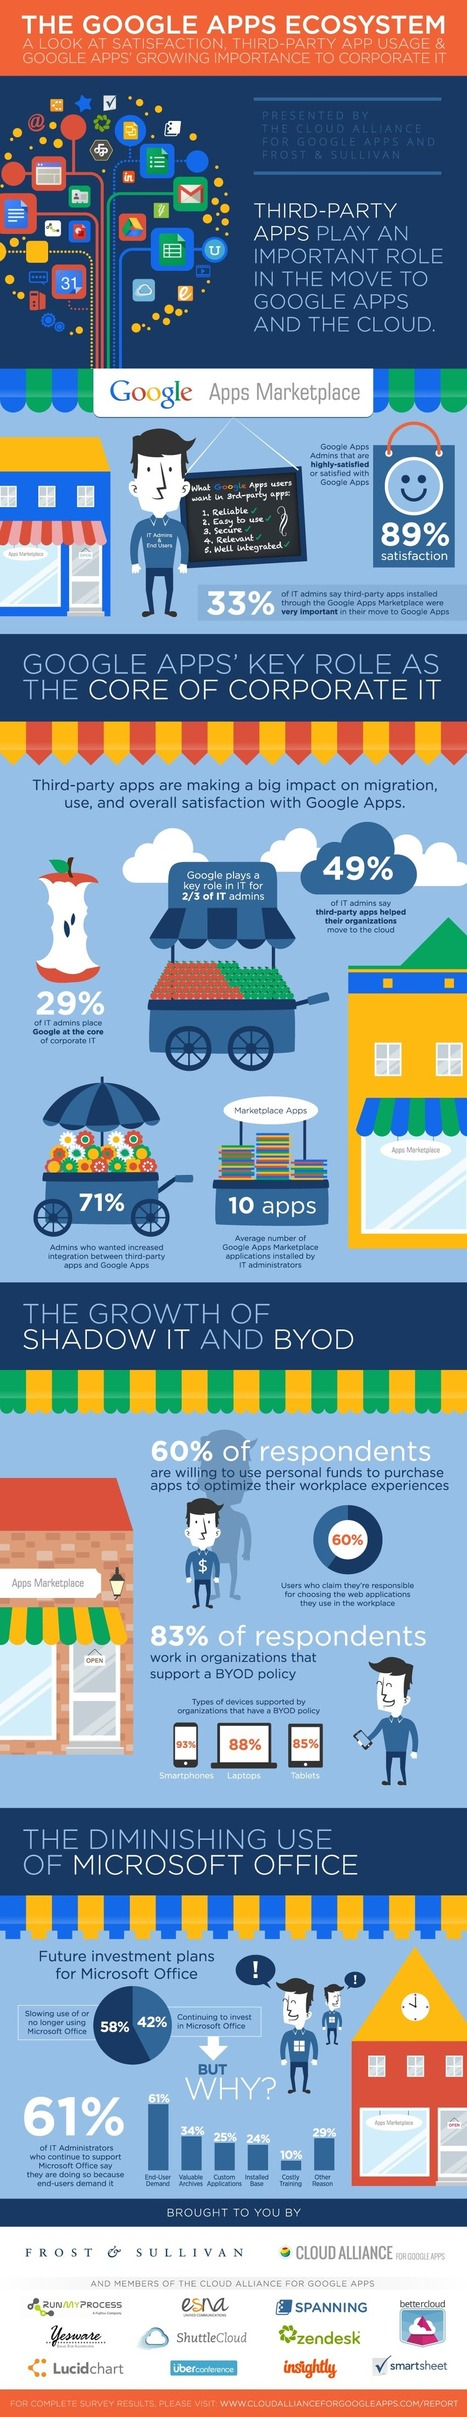 2014 Report - State of the Google Apps Ecosystem | Elementary Technology Education | Scoop.it